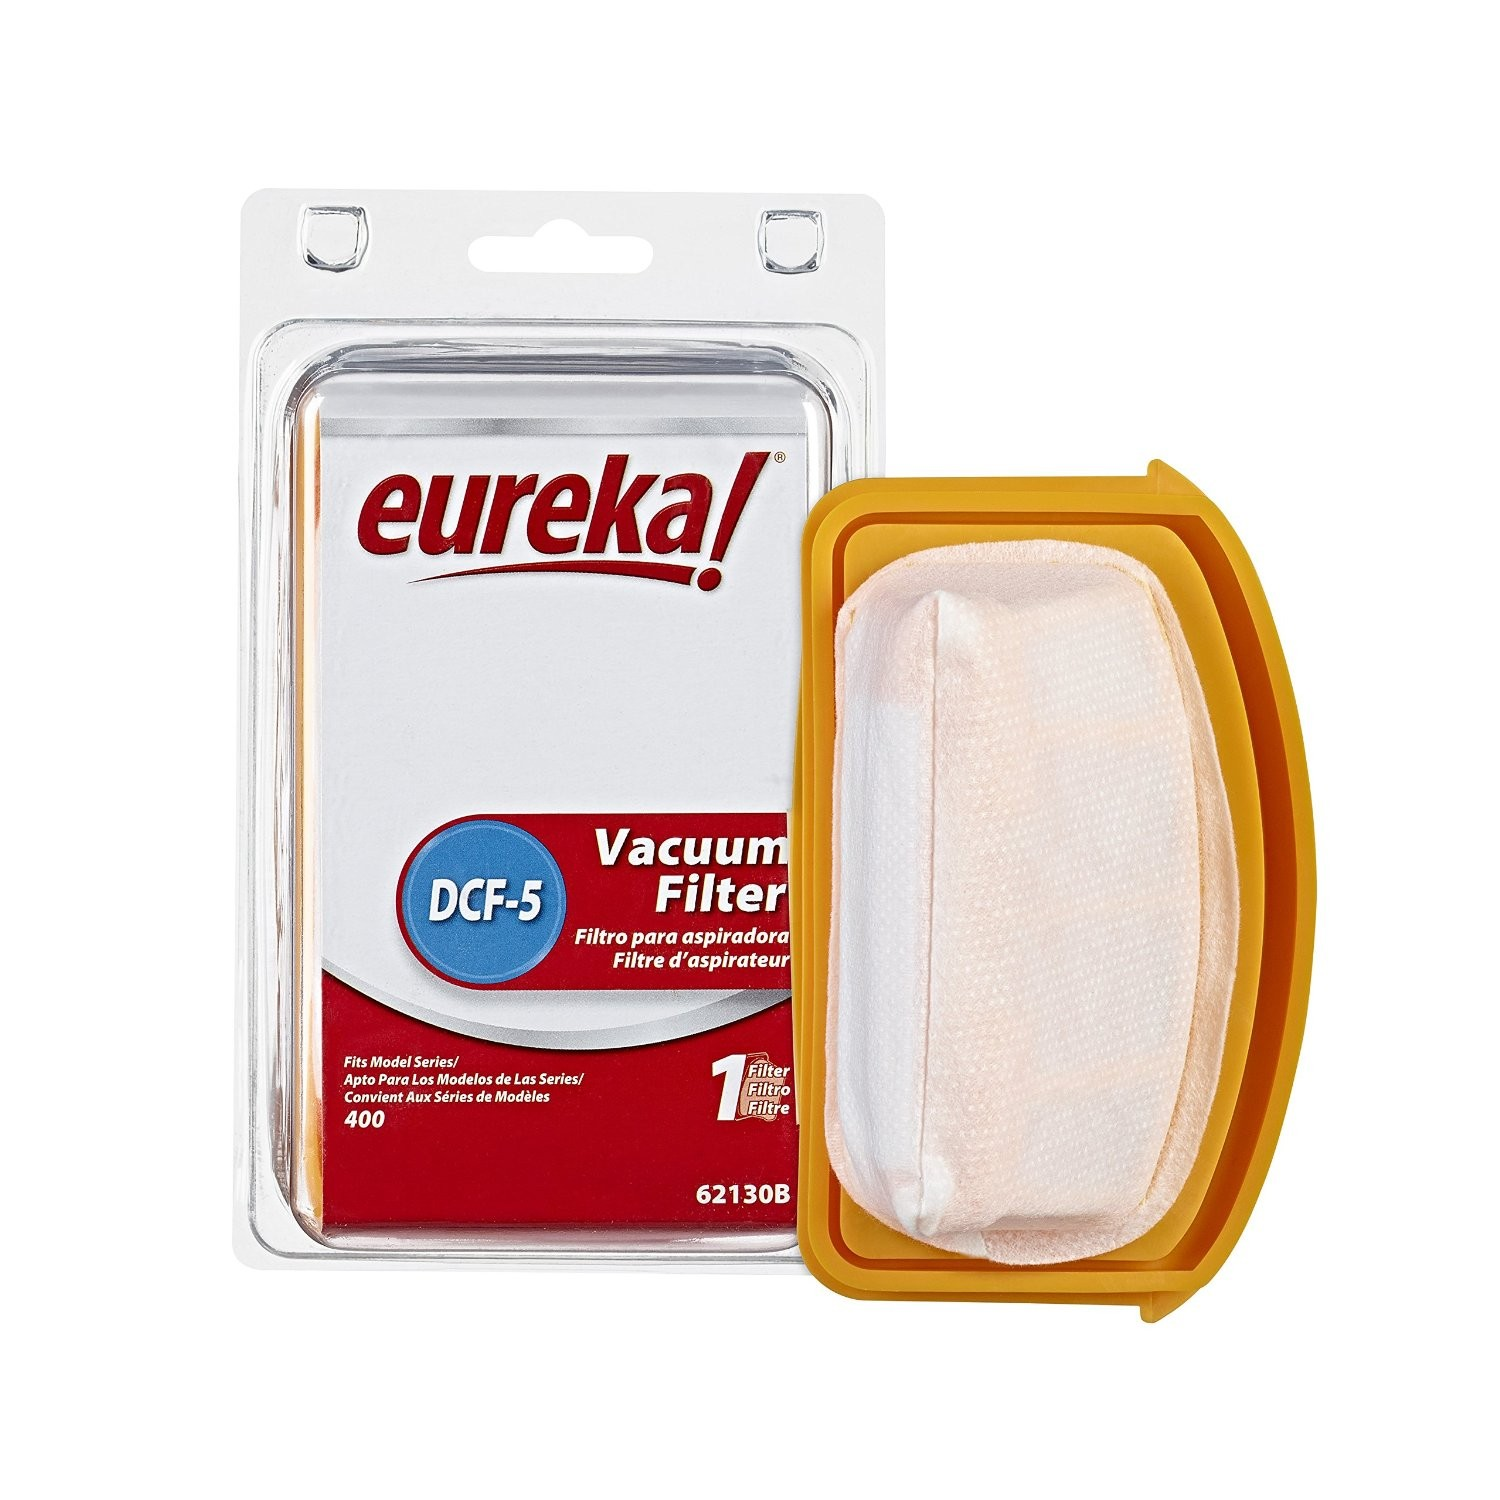 Eureka Genuine DCF-5 filter